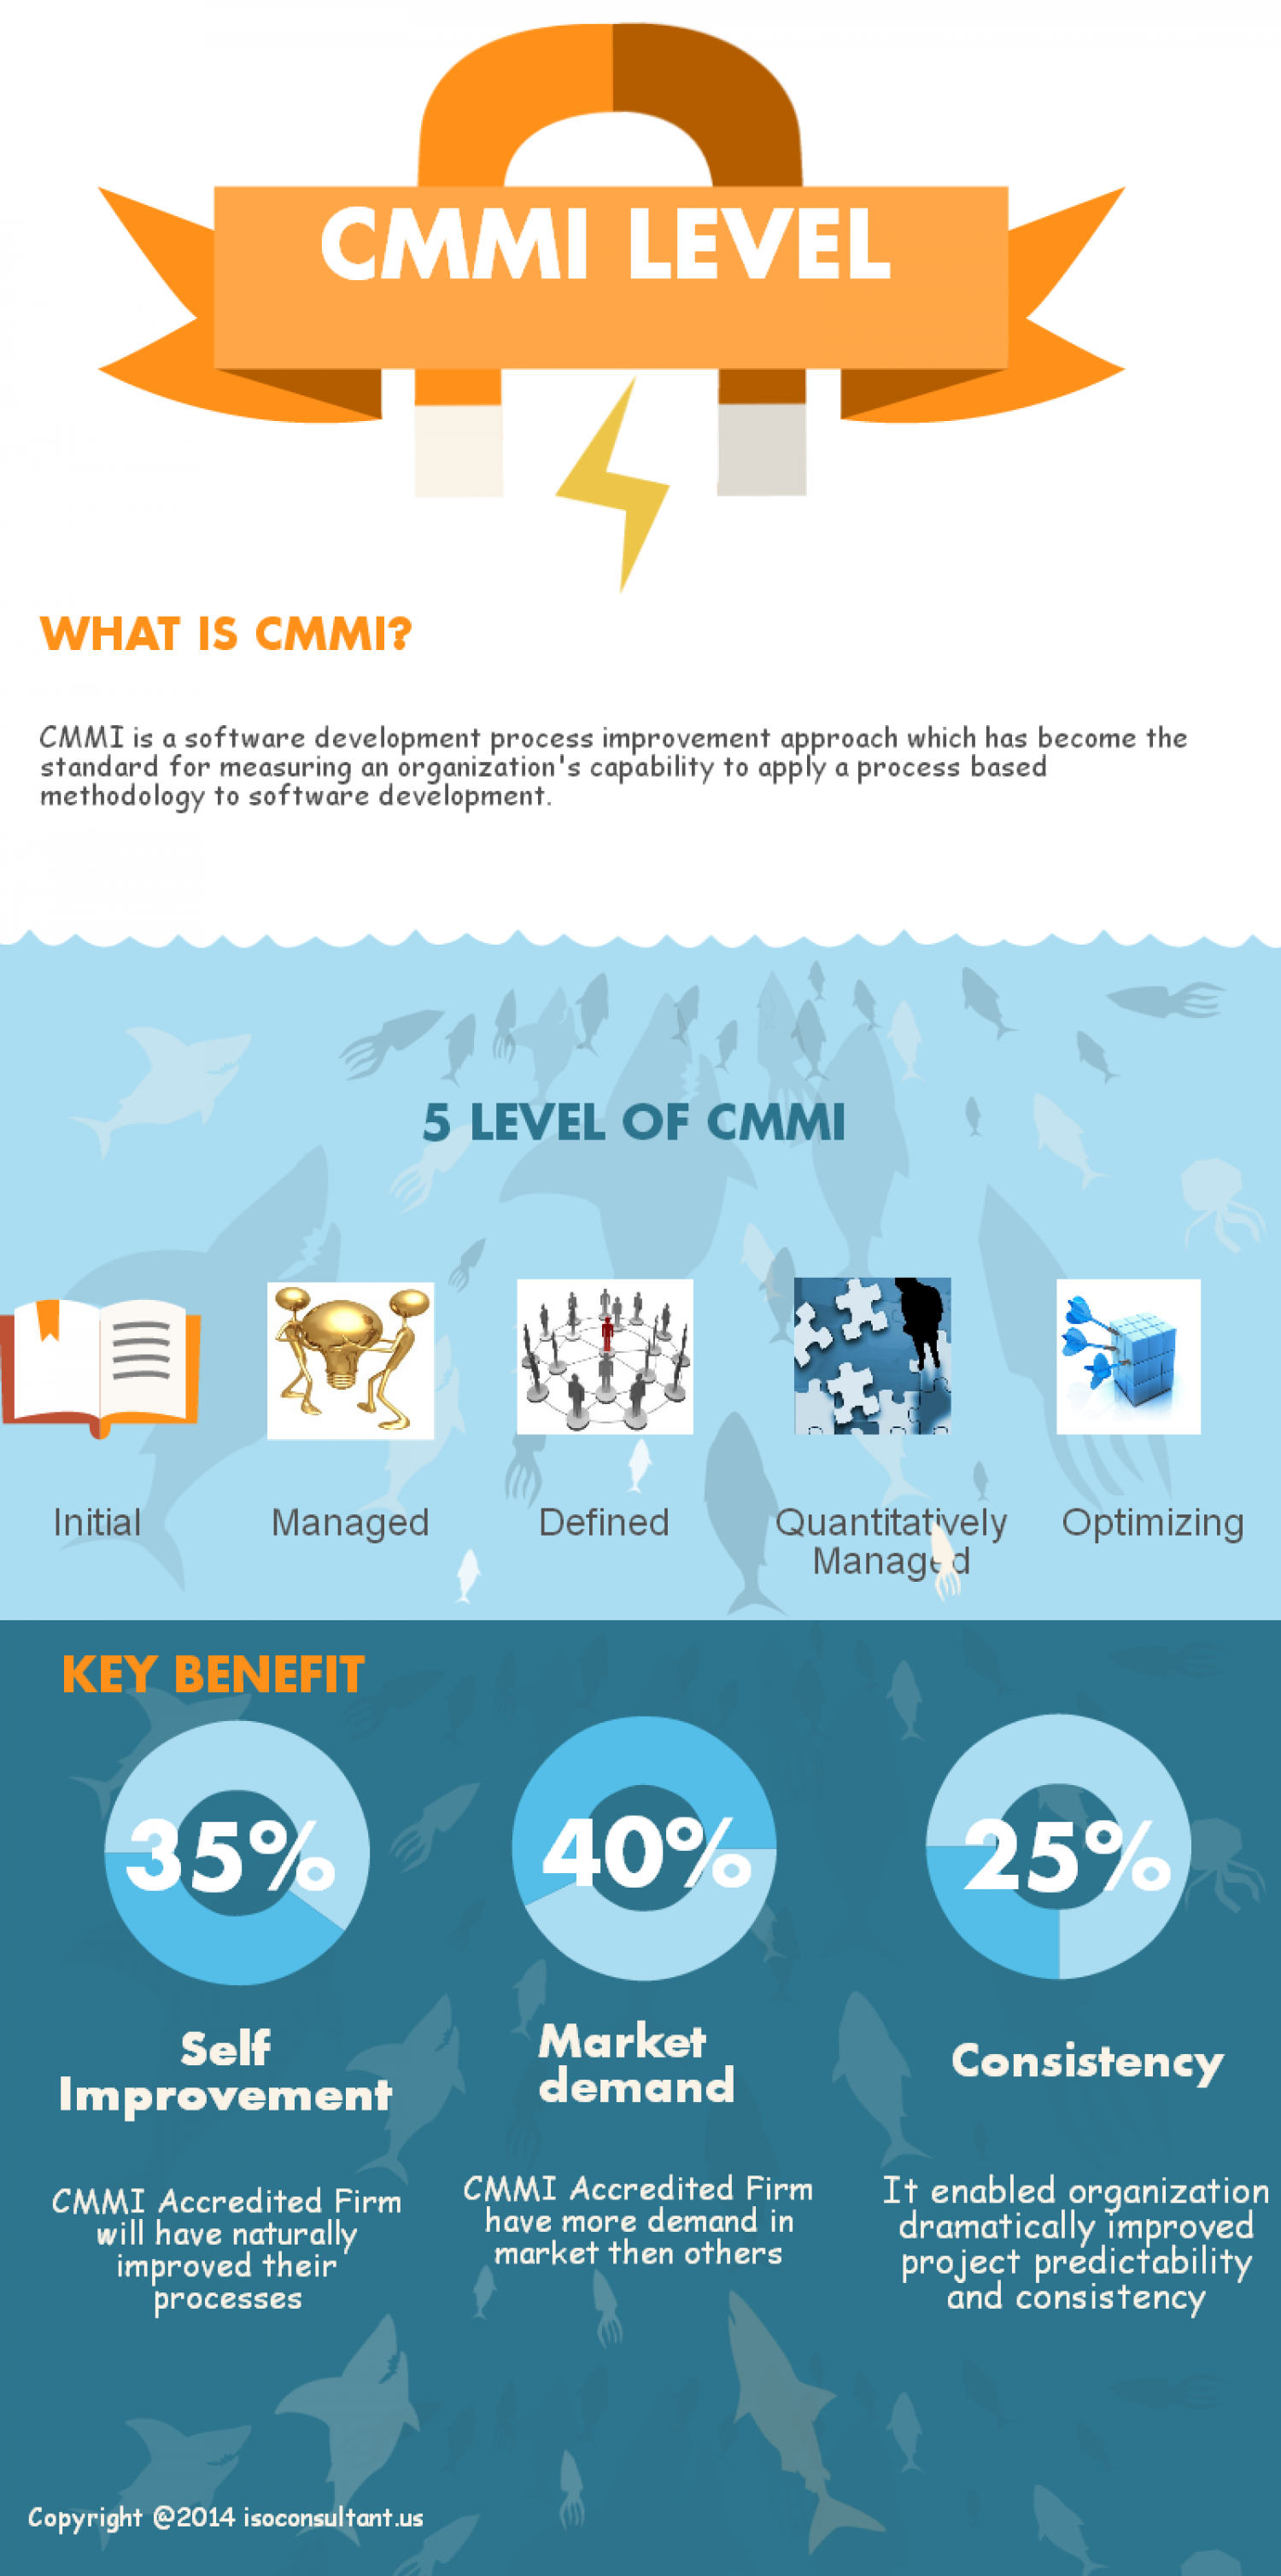 The Overview of CMMI Level Infographic